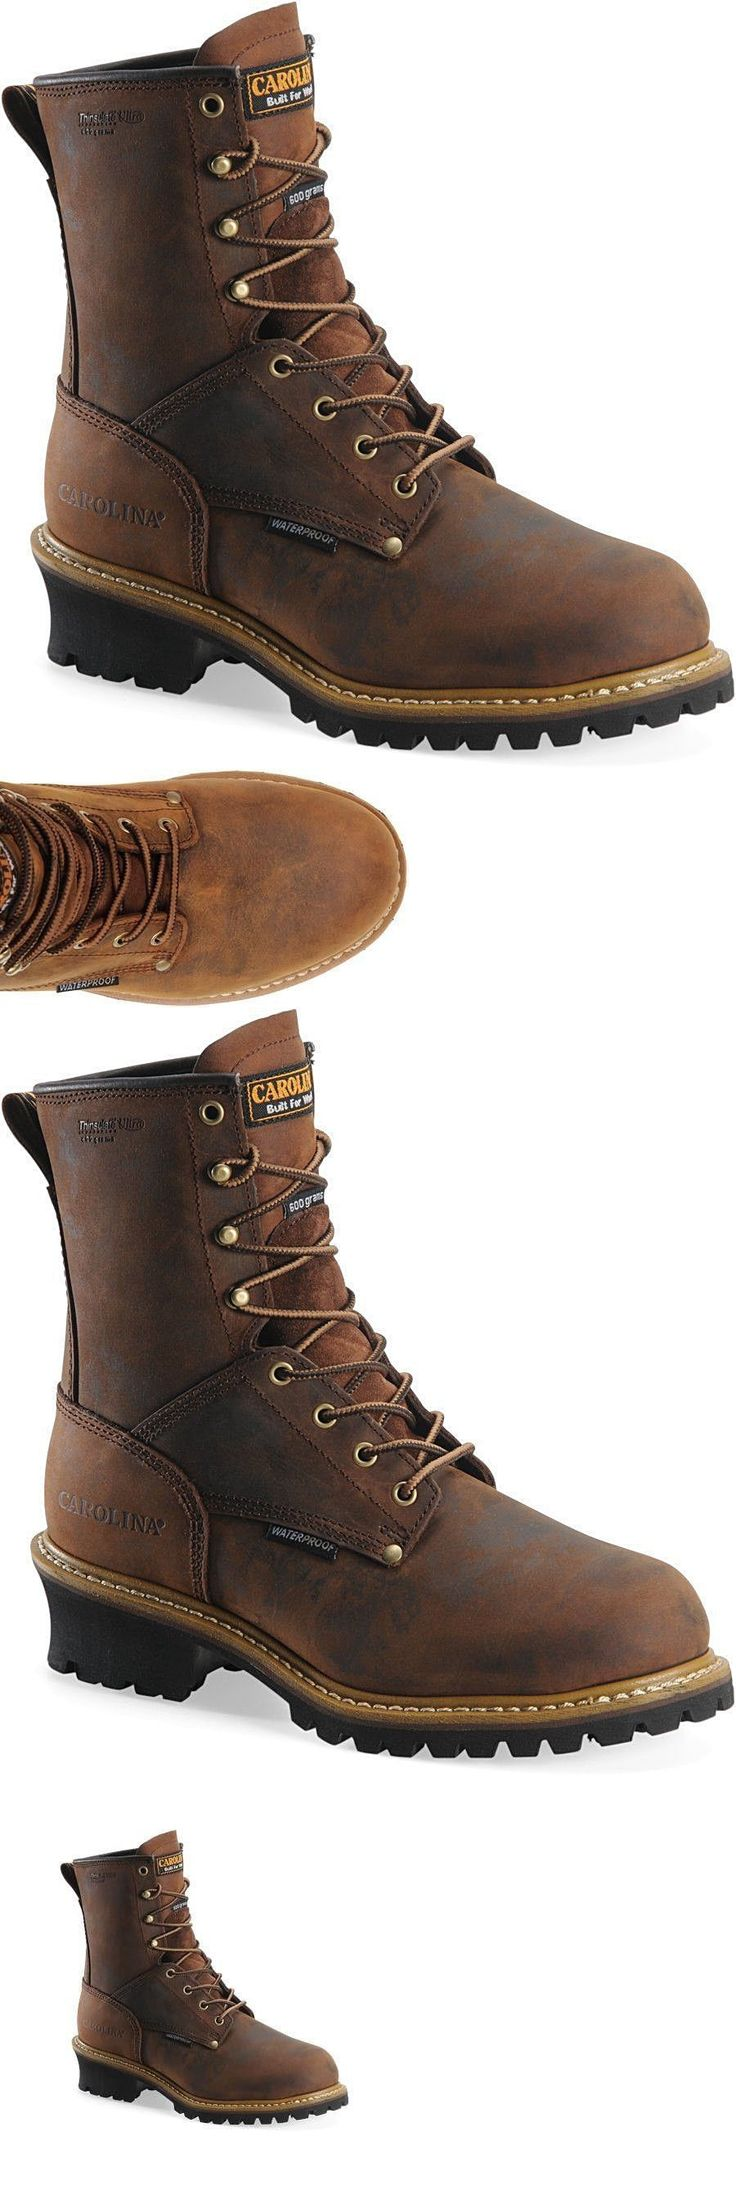 Occupational 11501: Carolina Men Boots Waterproof Insulated Logger Steel Toe Leather Work And Safety -> BUY IT NOW ONLY: $125.99 on eBay!